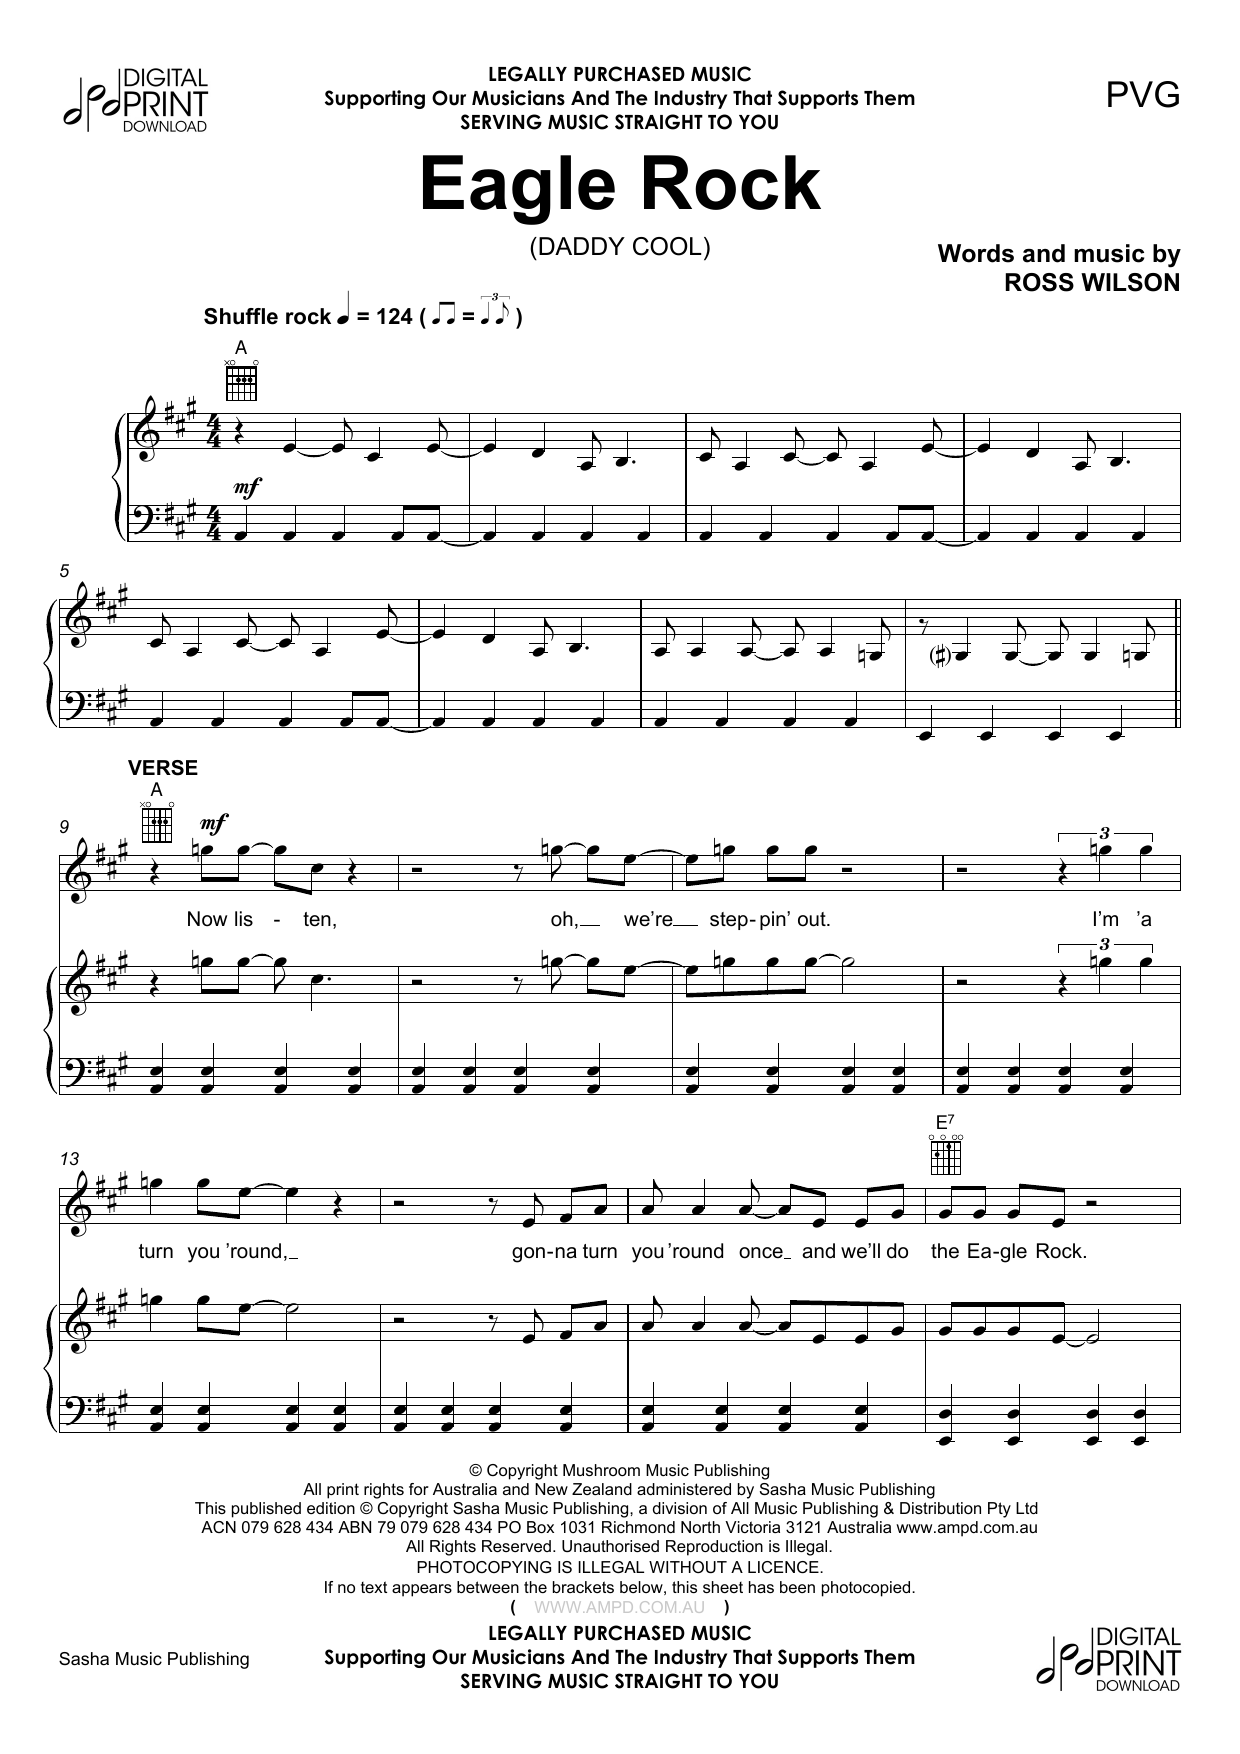 Daddy Cool Eagle Rock Sheet Music Notes Chords Printable Rock